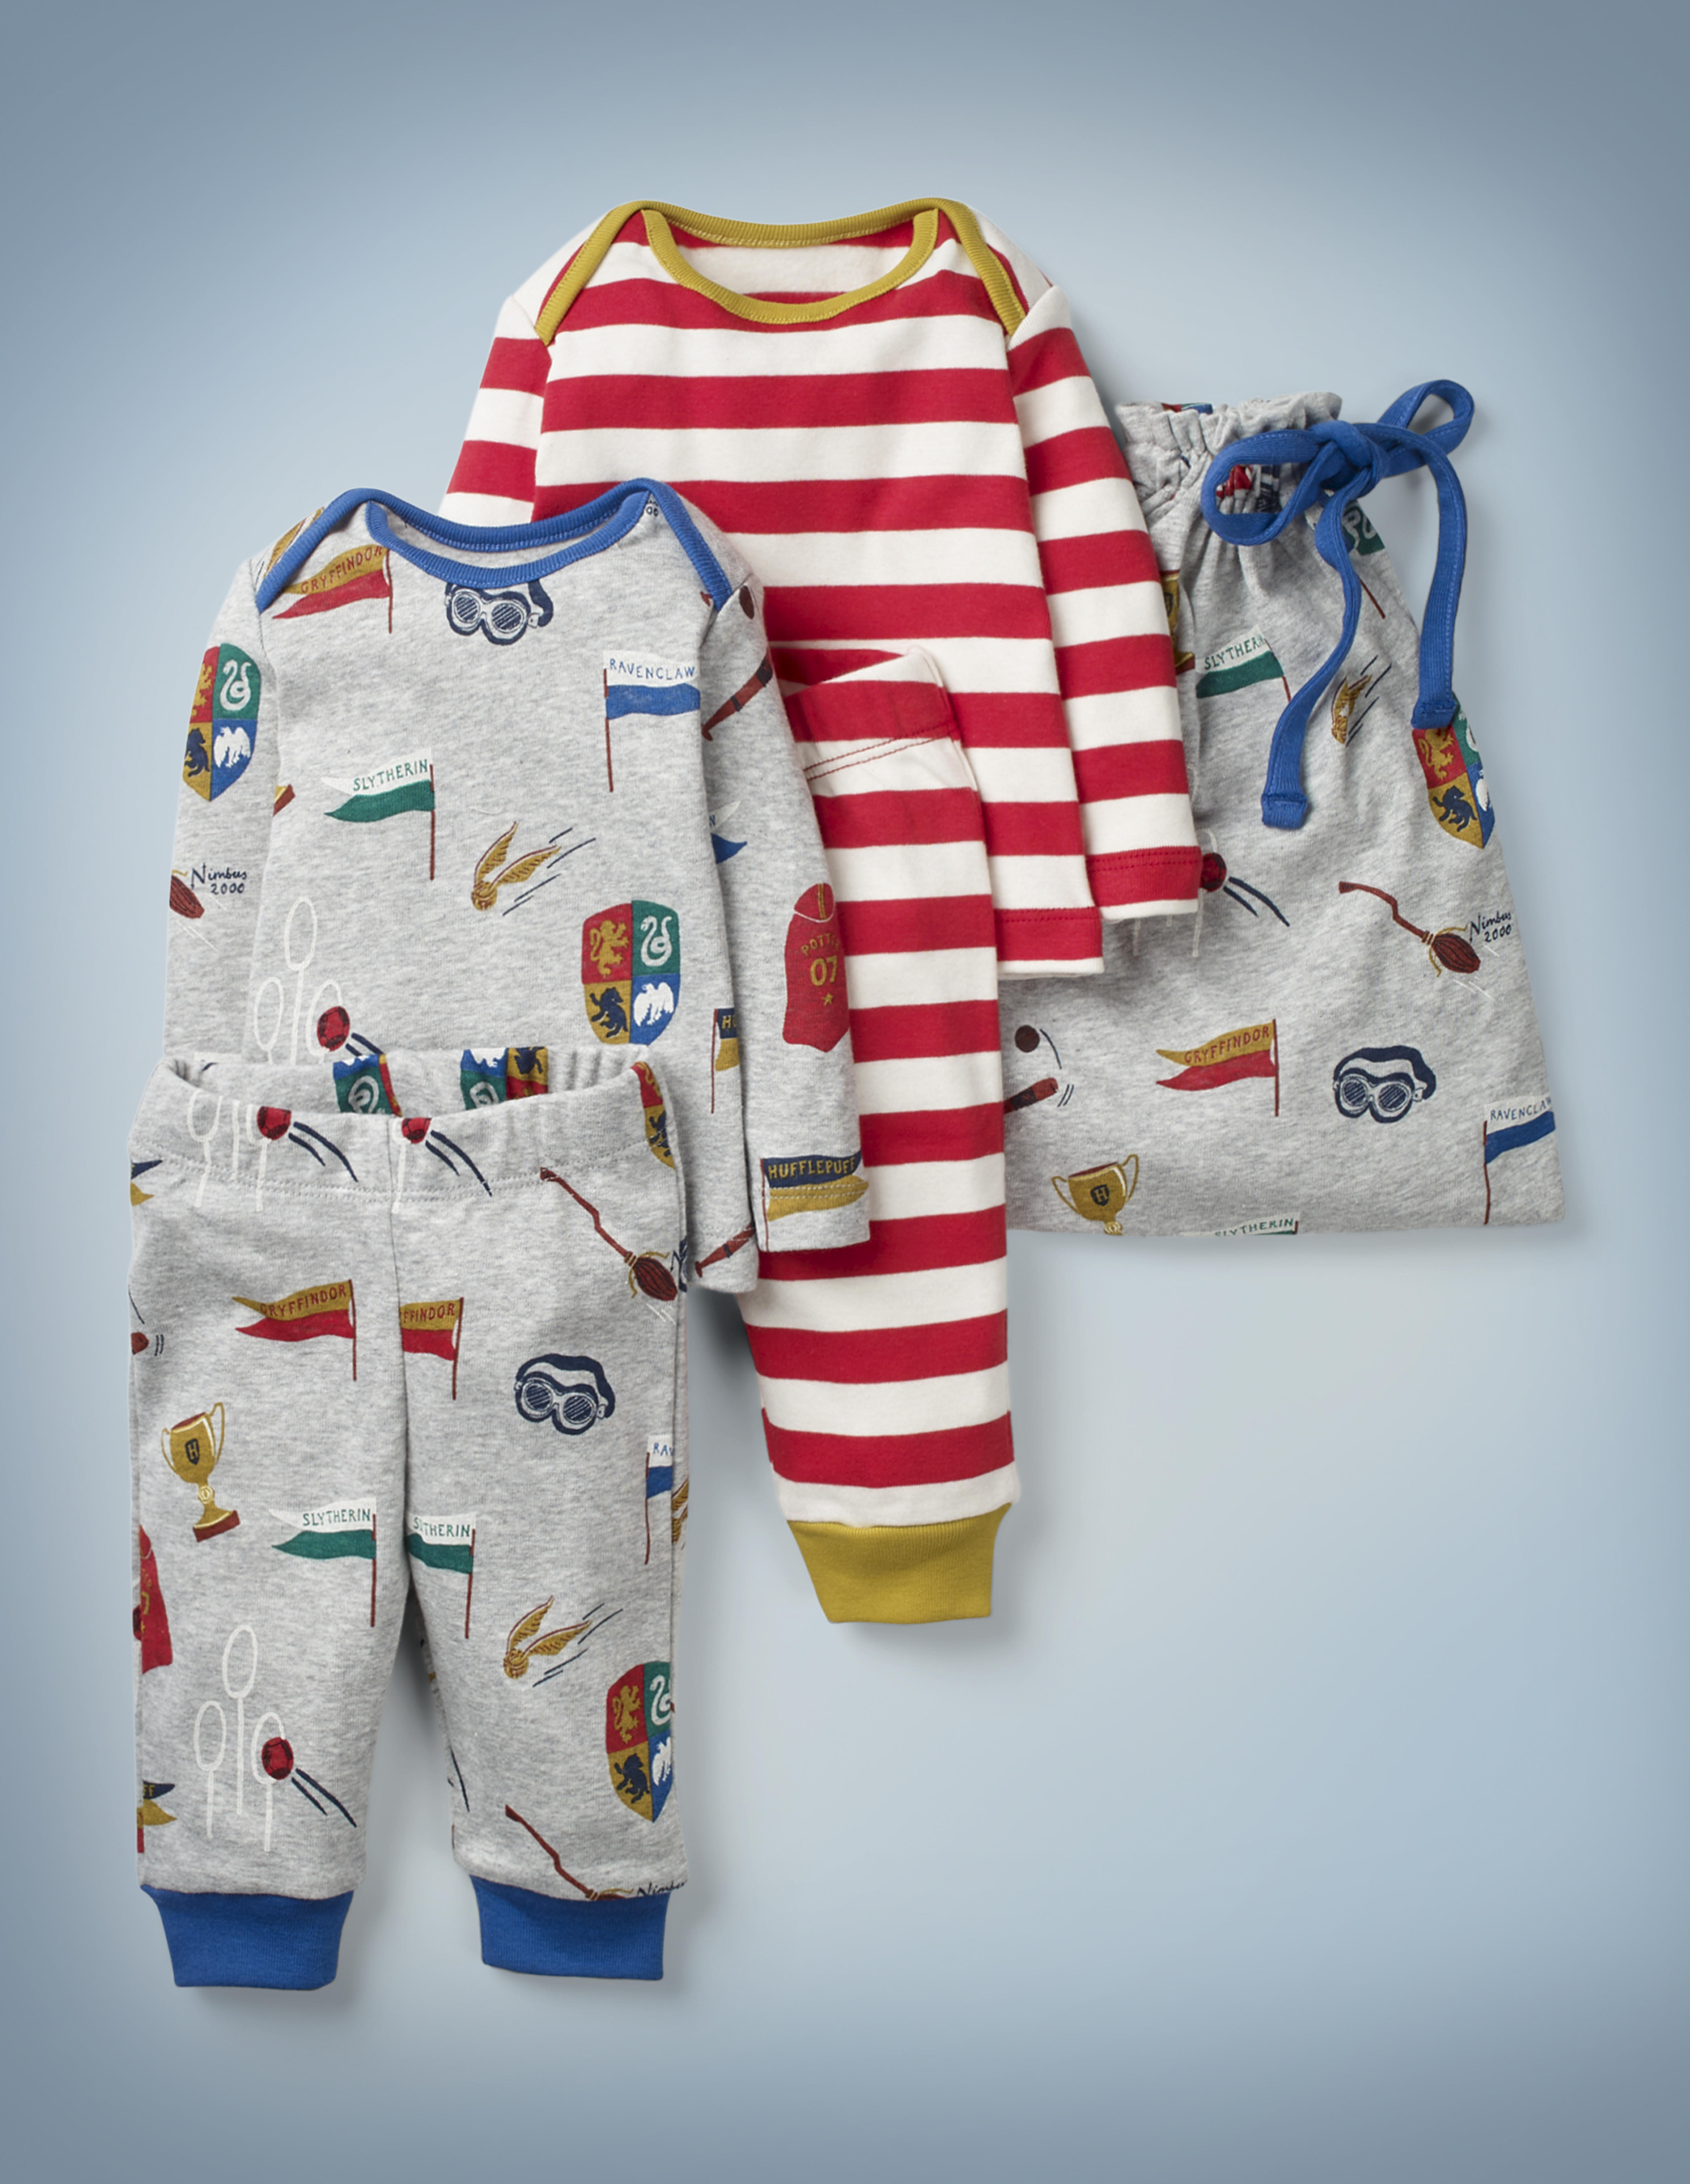 The Mini Boden Harry Potter Play Set, multi, features two top-and-bottom play outfits – one gray and featuring all-over images of Quidditch-related items, one with all-over red-and-white stripes and gold collar and pant cuffs – and a gray drawstring bag featuring Quidditch items. It retails between £35 and £38.